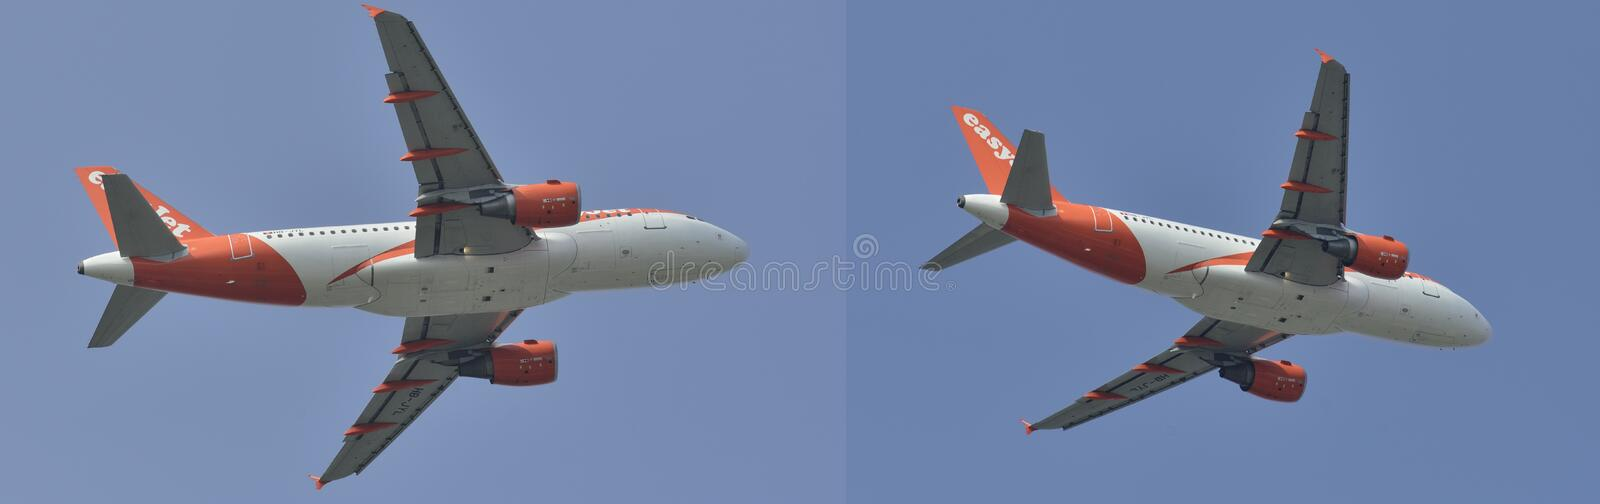 Twin engine jet airplane flying in different positions stock photo